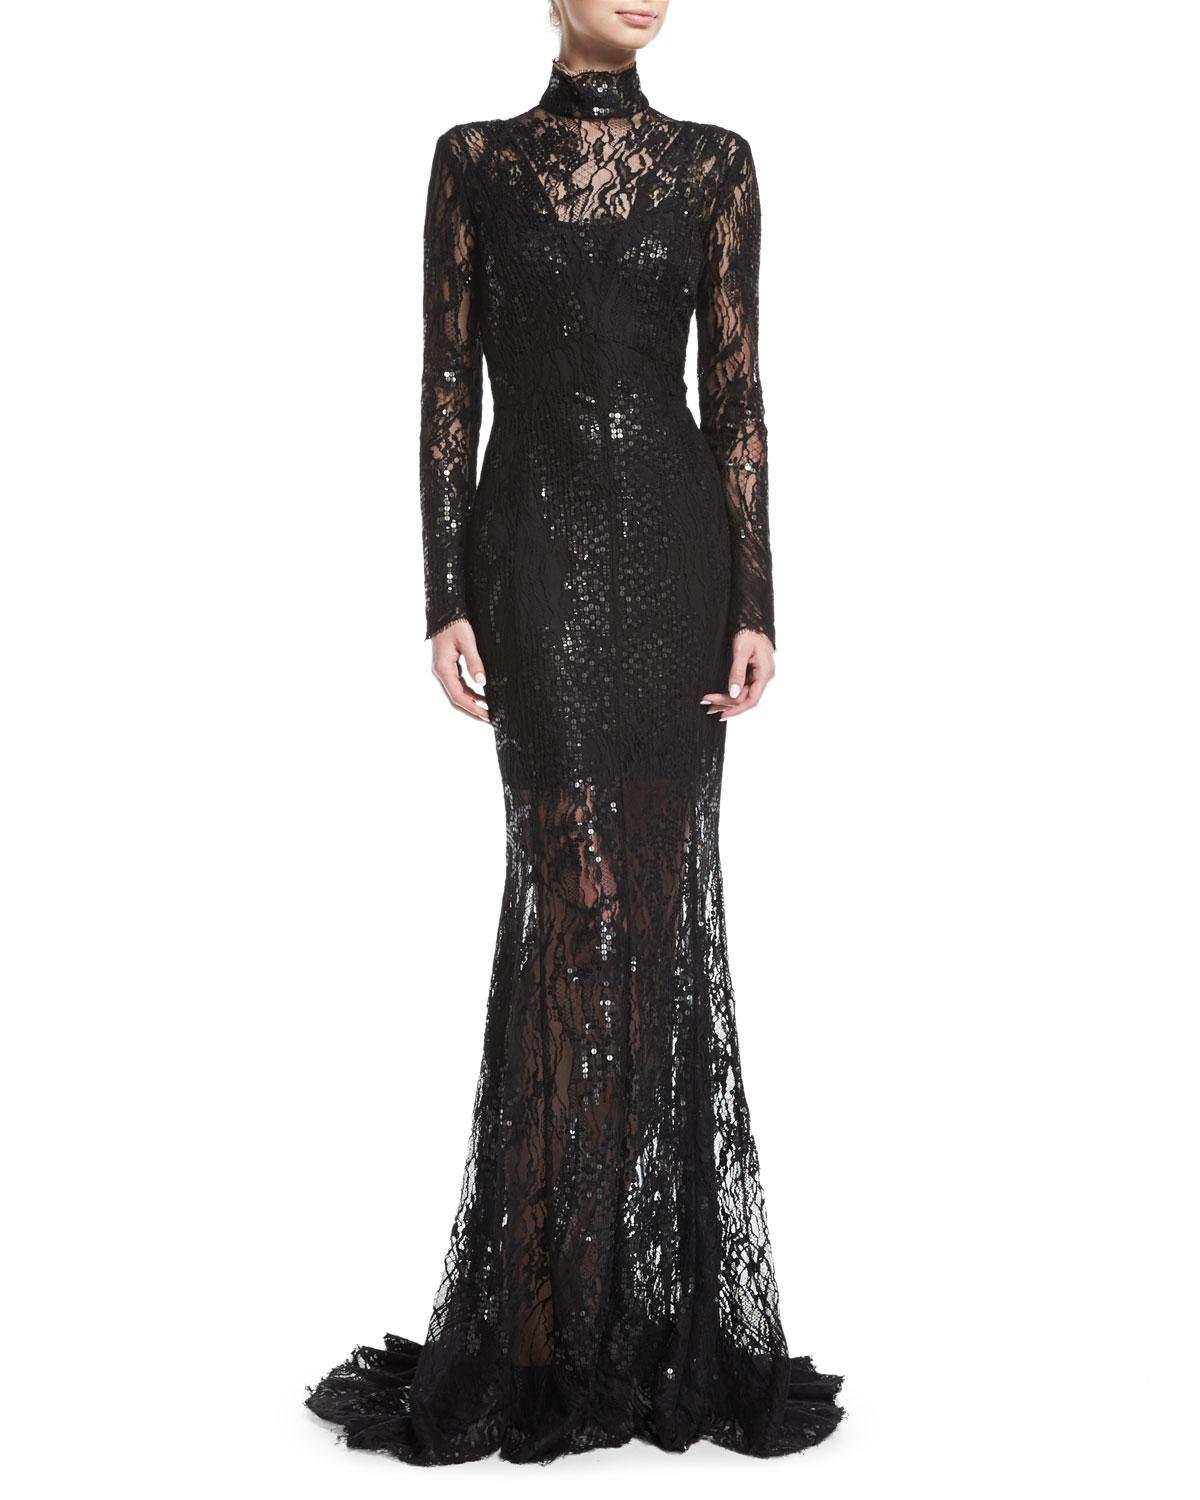 Lyst - J. Mendel Long-sleeve Sequined Lace Turtleneck Gown in Black